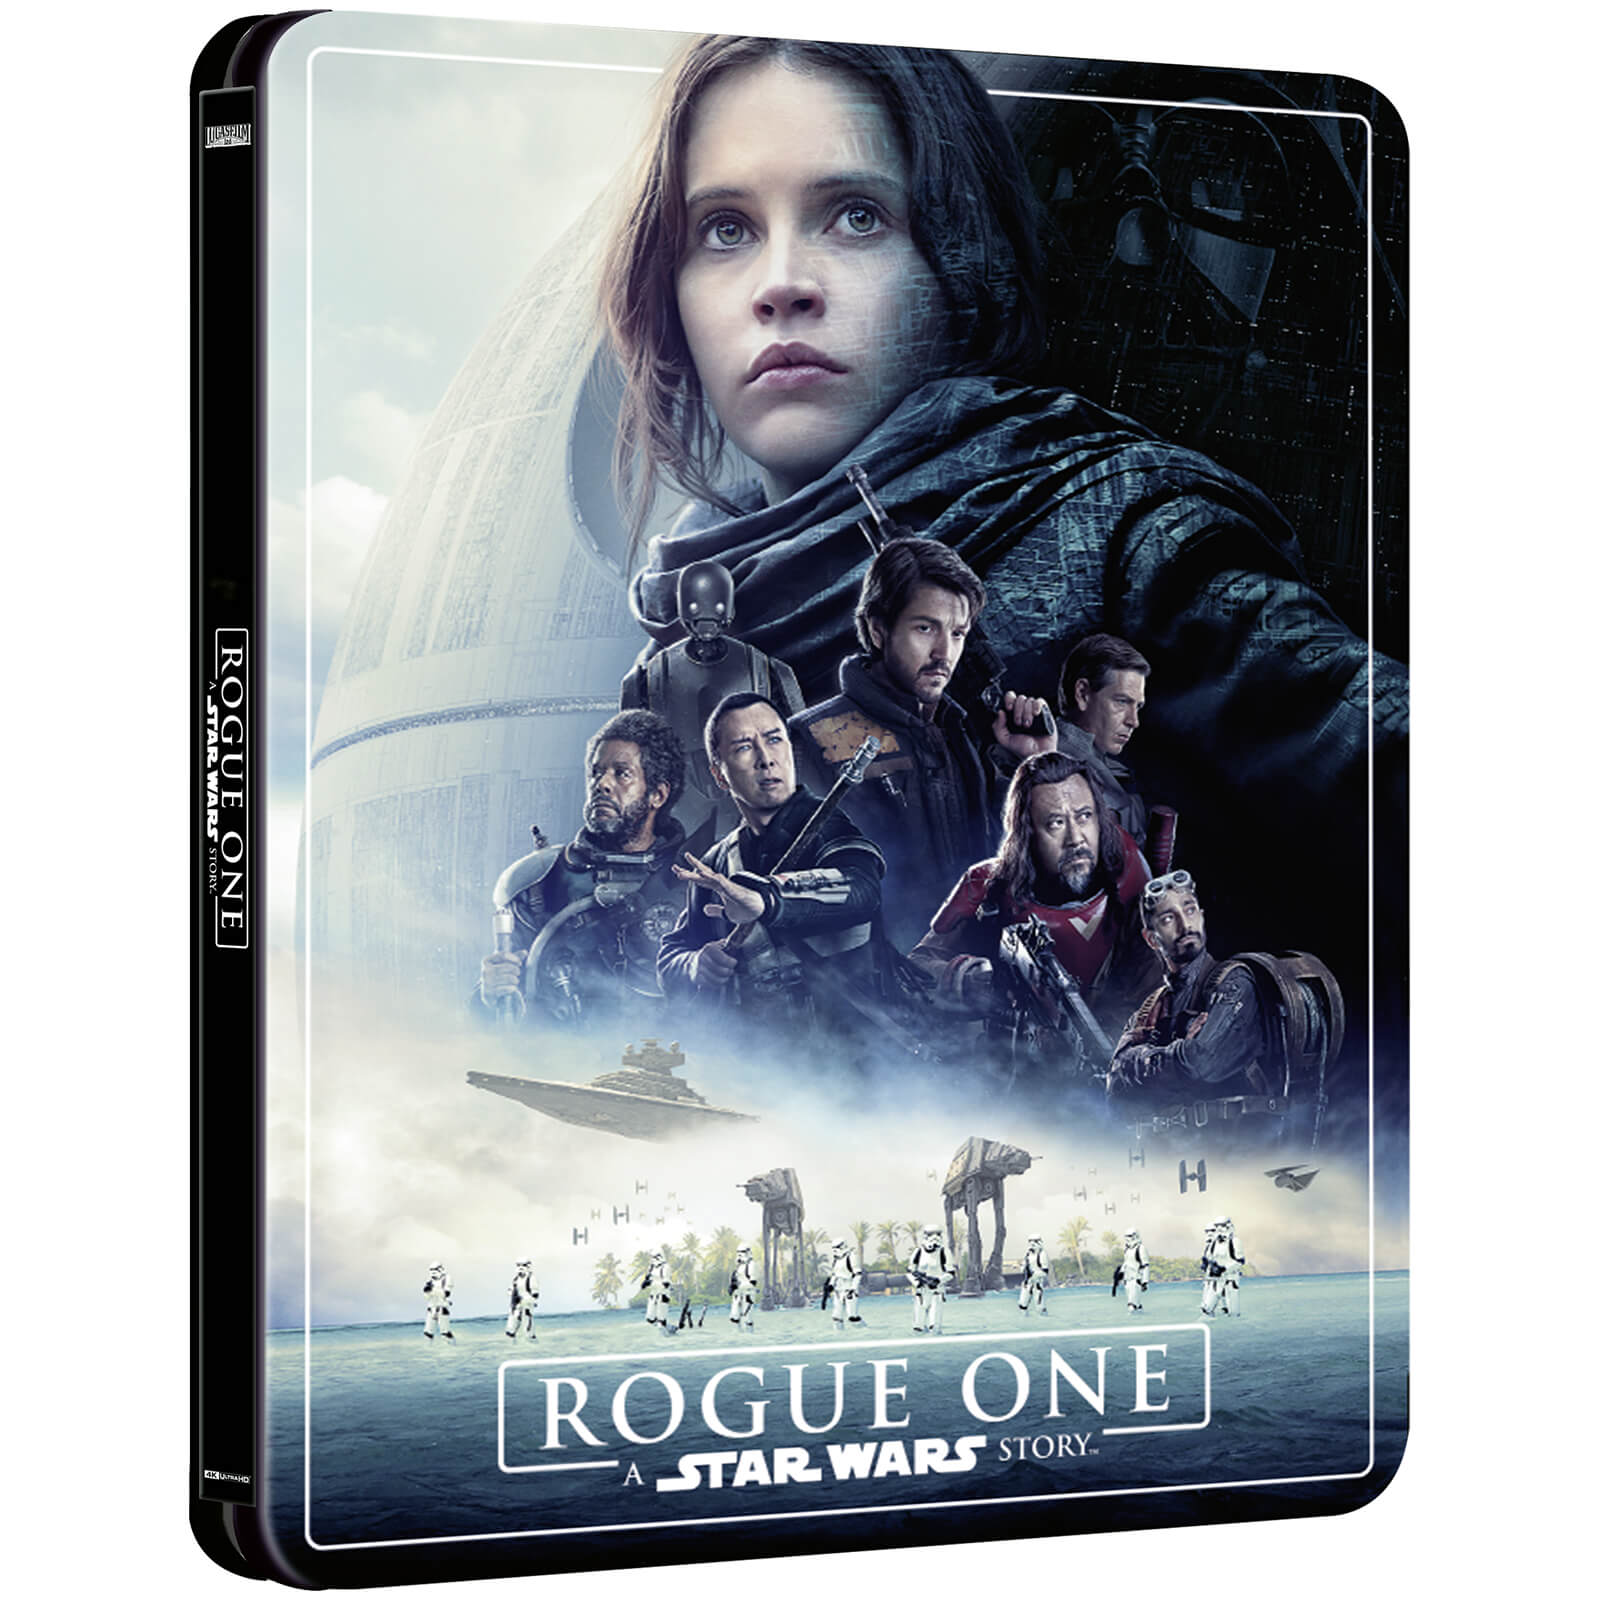 Rogue One: A Star Wars Story (Zavvi Steelbook)